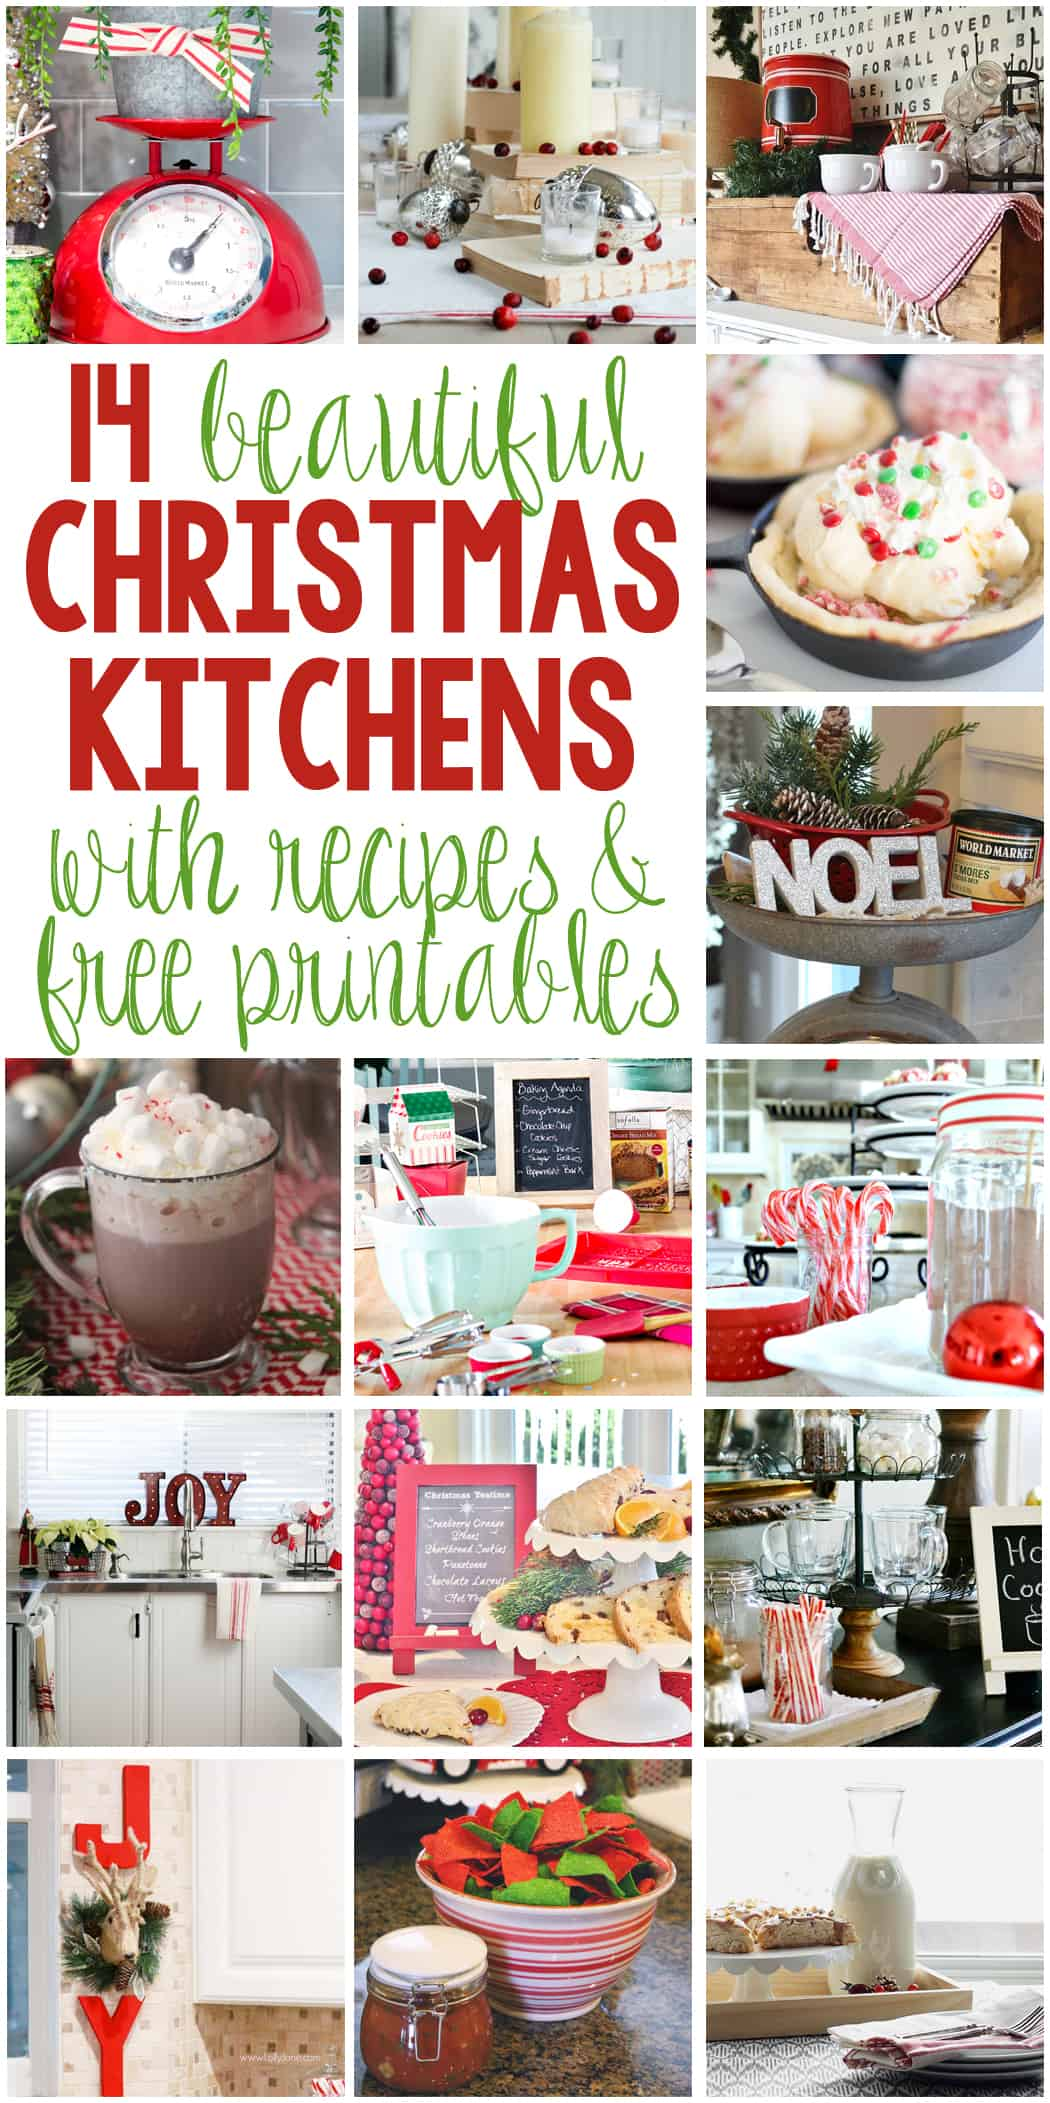 14 Beautiful Christmas Kitchens with Recipes and Free Printables